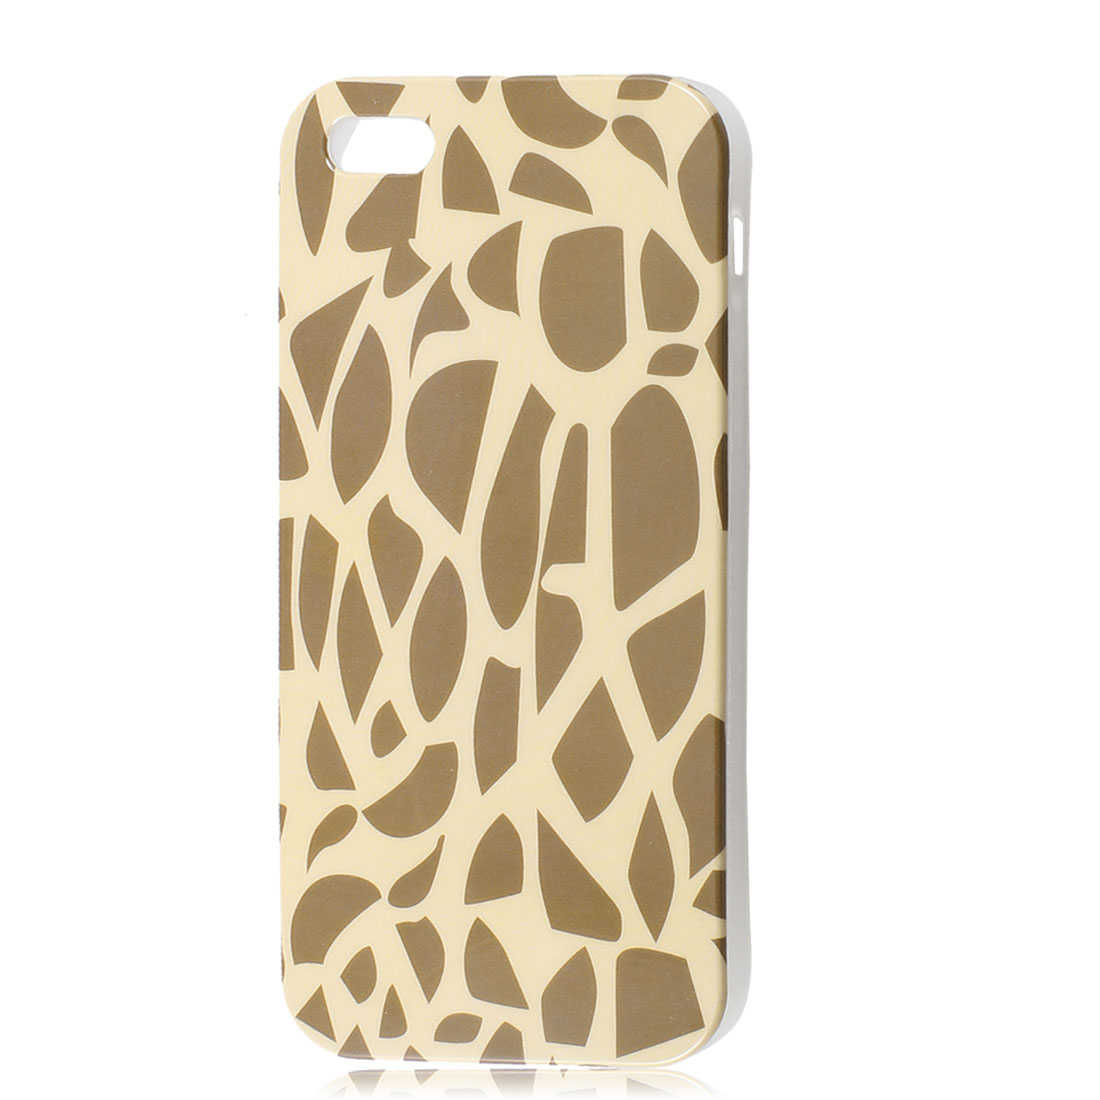 Giraffe Print Beige TPU Soft Protective Case Cover for Apple iPhone 5 5G